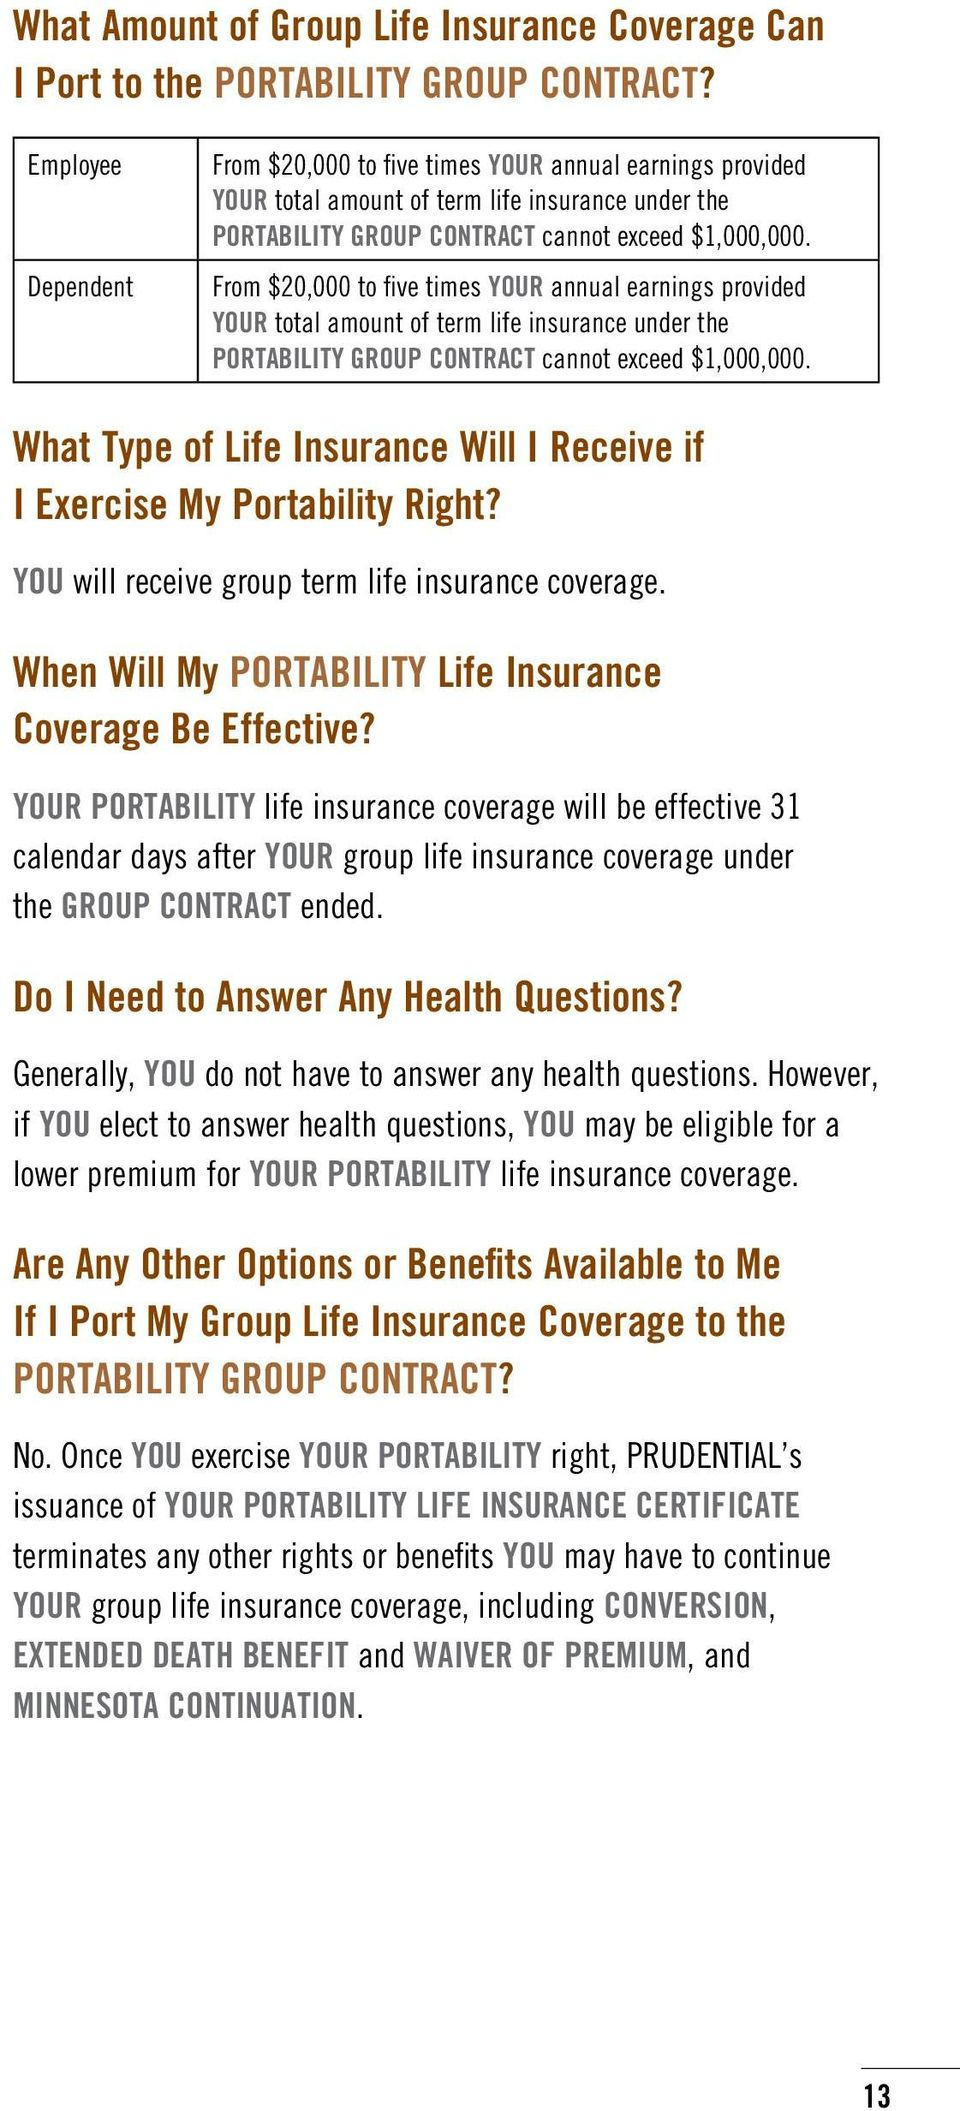 From $20,000 to five times YOUR annual earnings provided YOUR total amount of term life insurance under the PORTABILITY GROUP CONTRACT cannot exceed $1,000,000.